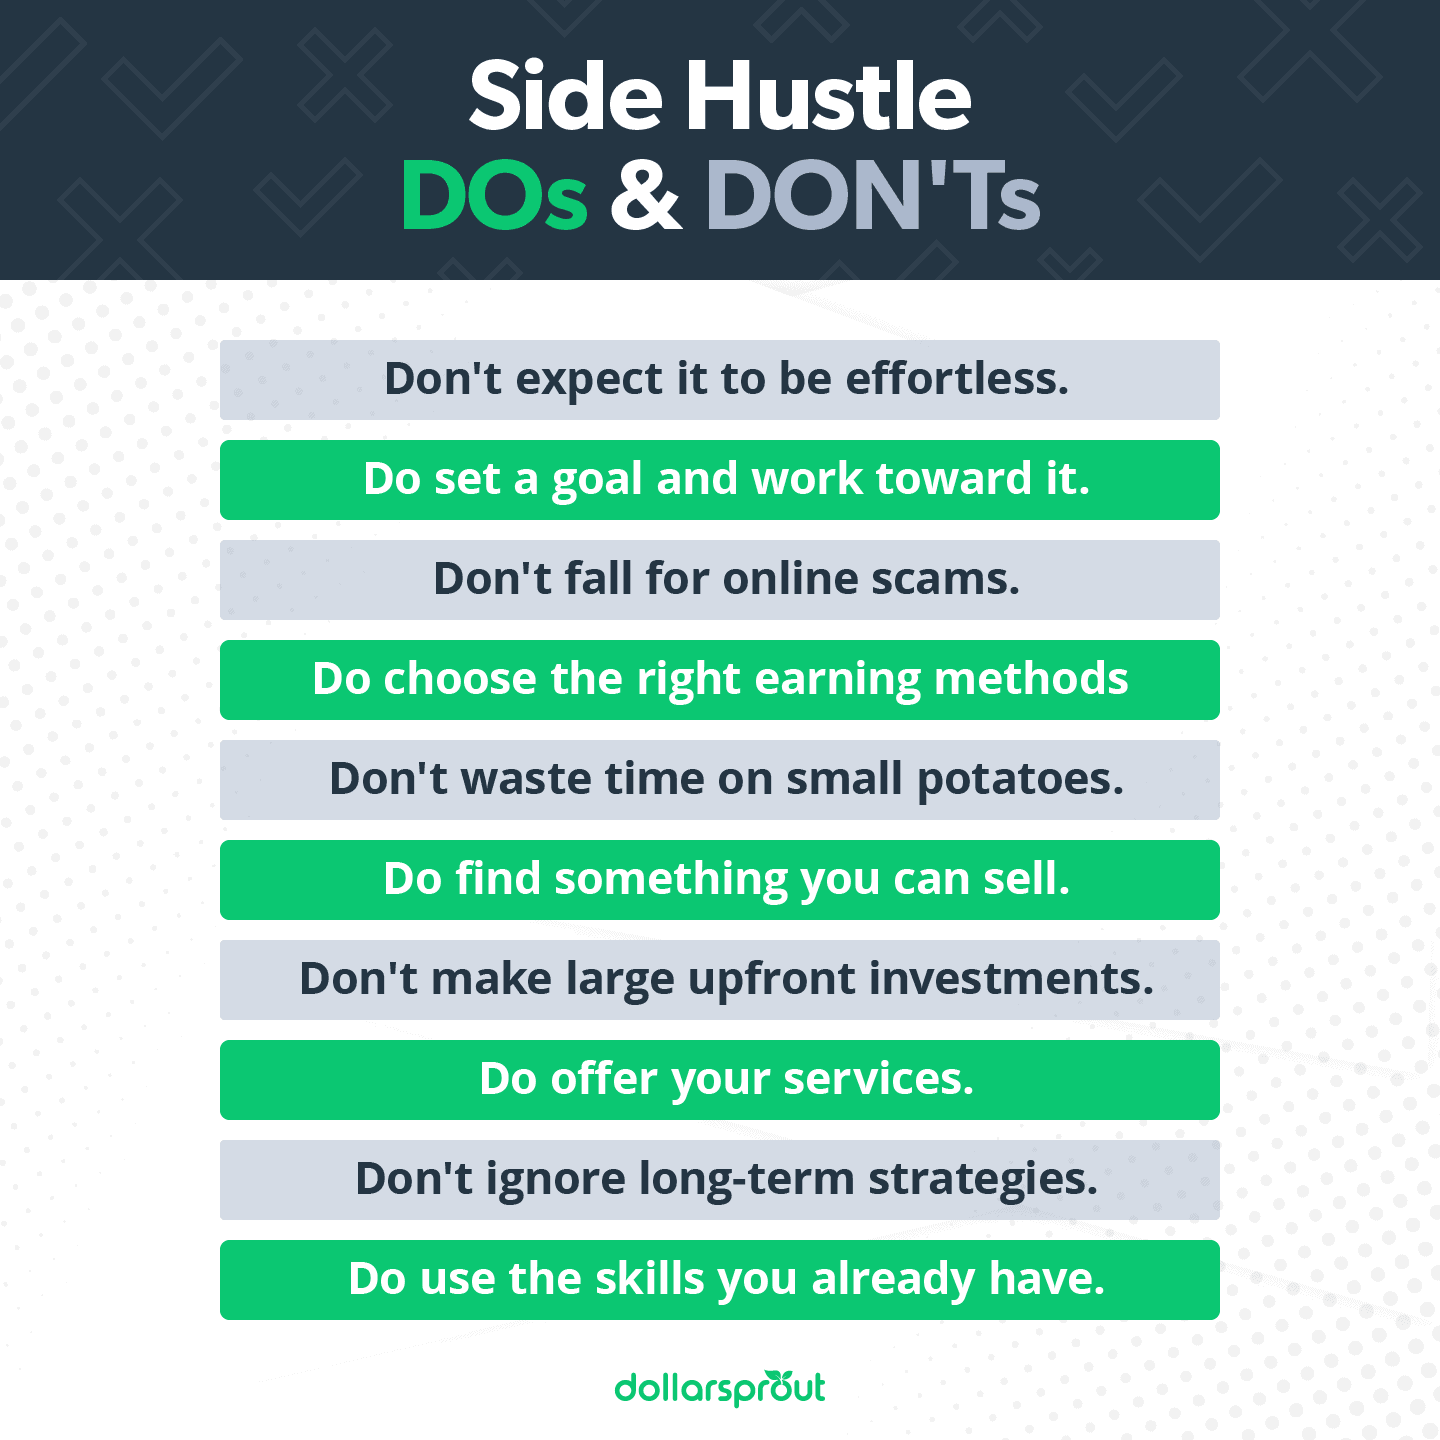 Side Hustle Dos and Don'ts